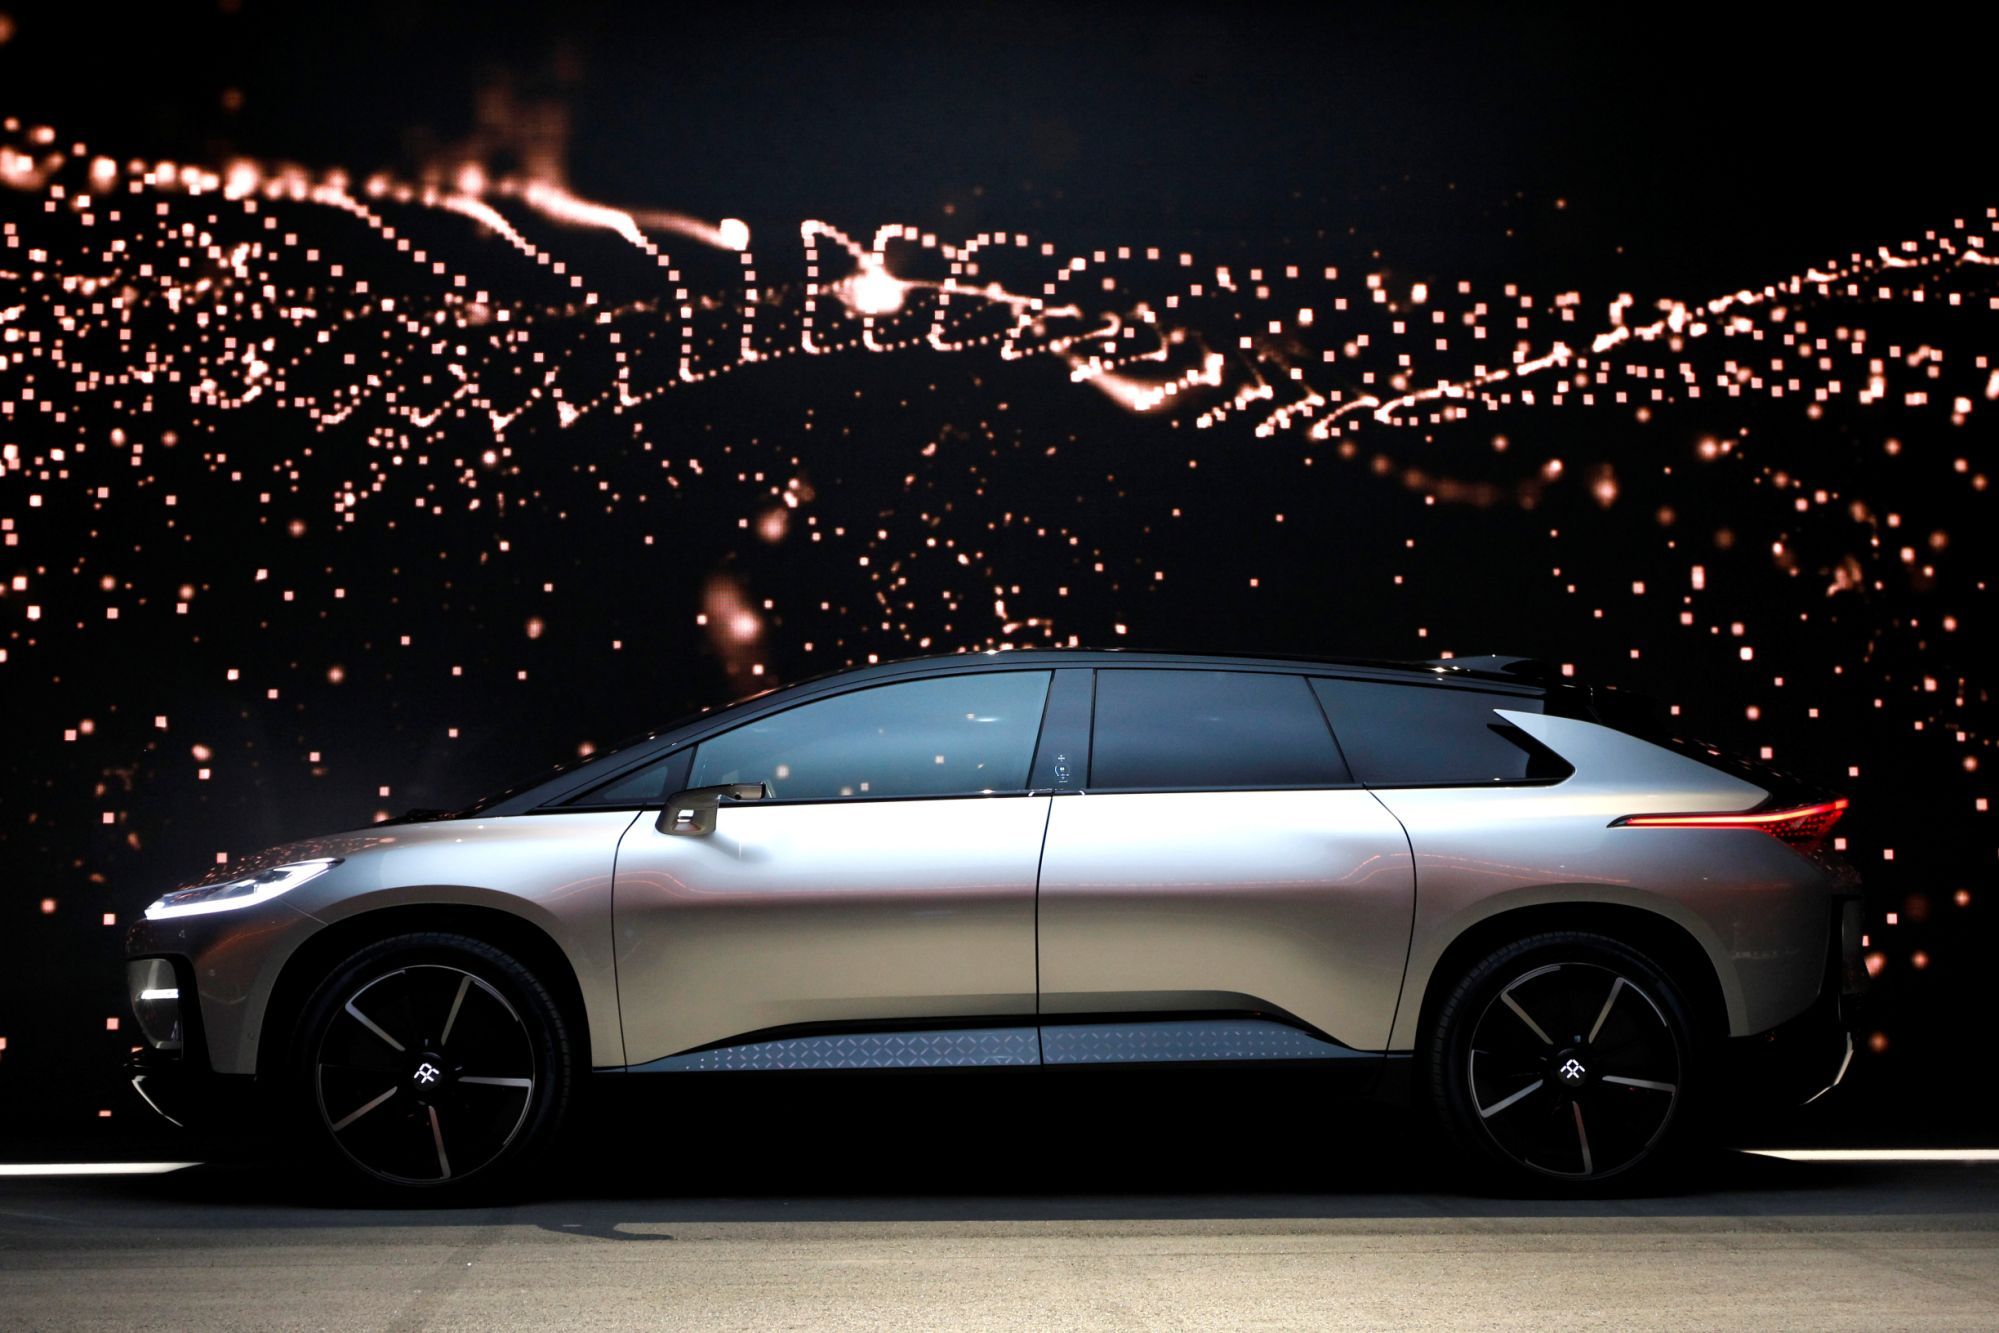 tesla-challenger-faraday-future-wants-to-go-from-0-to-$20b-in-sales-by-selling-lots-of-$180k-electric-cars